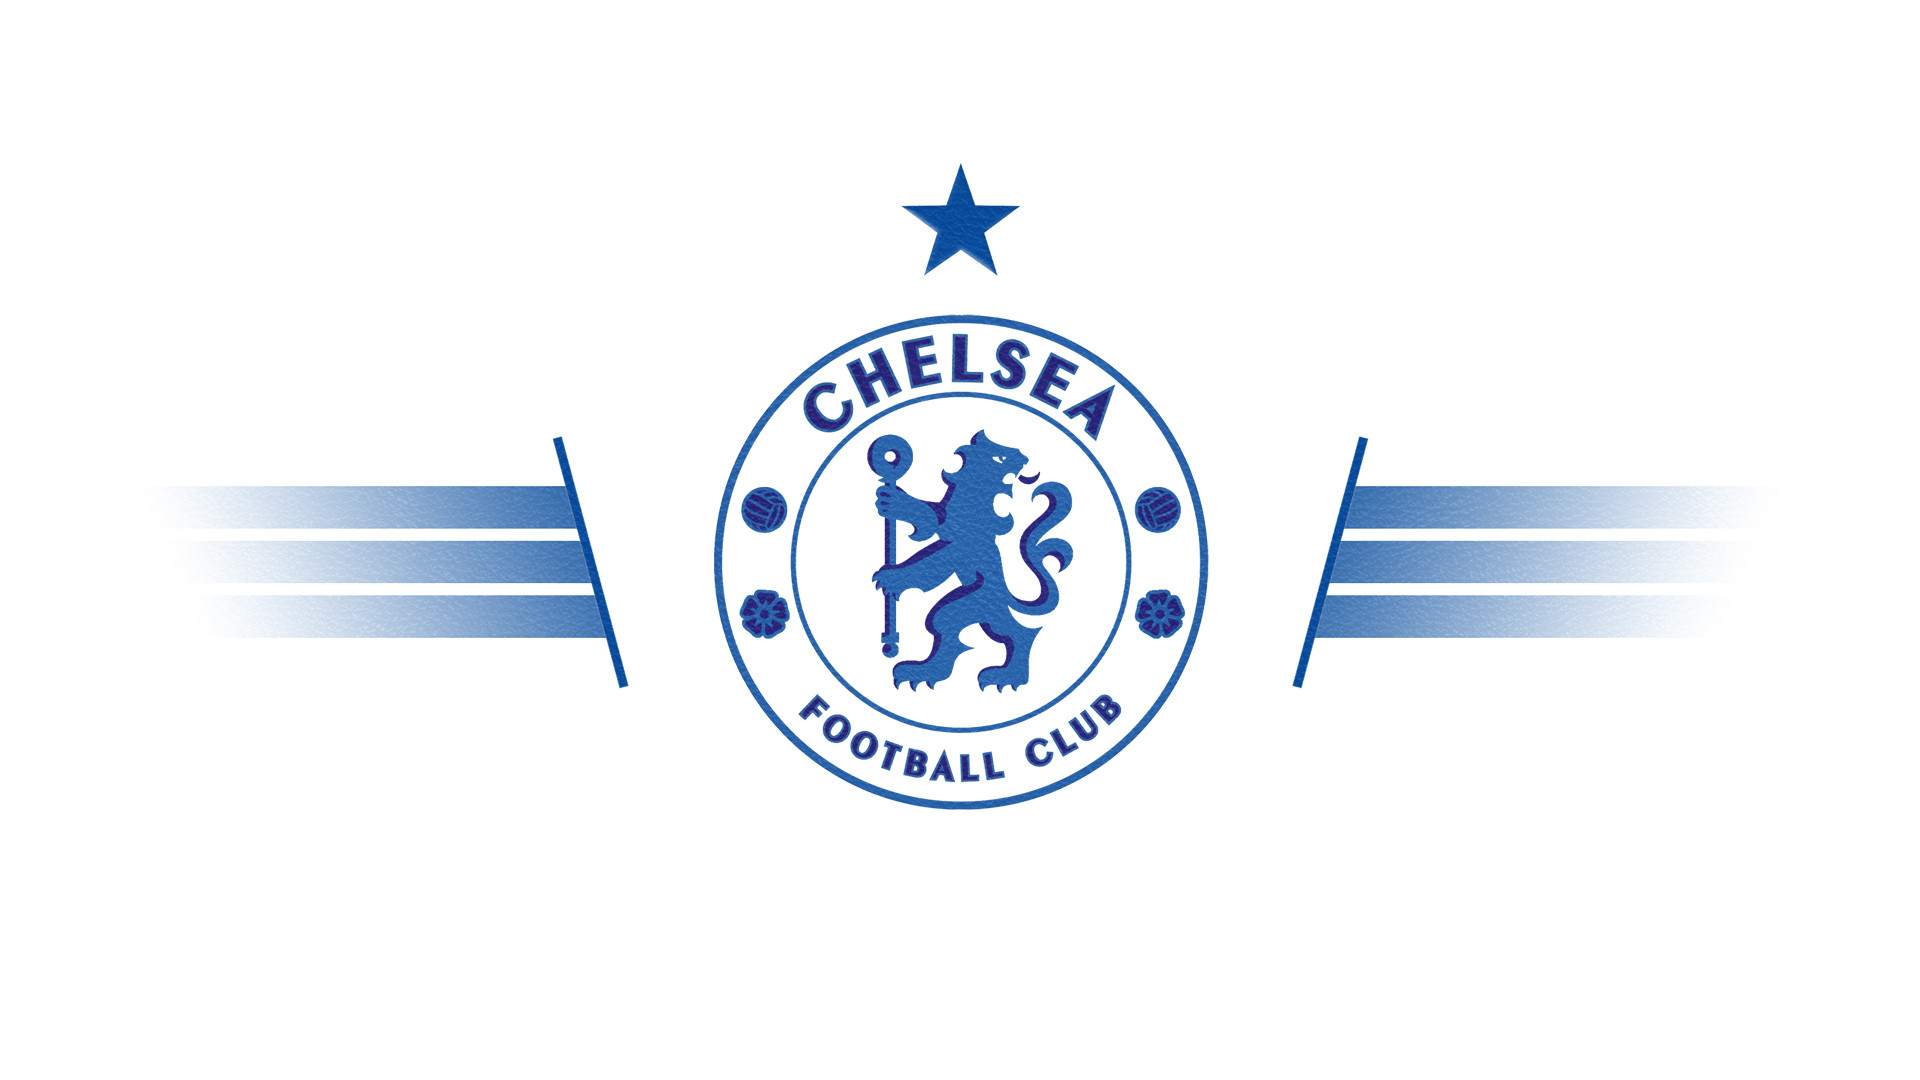 uefa champions league wallpapers download